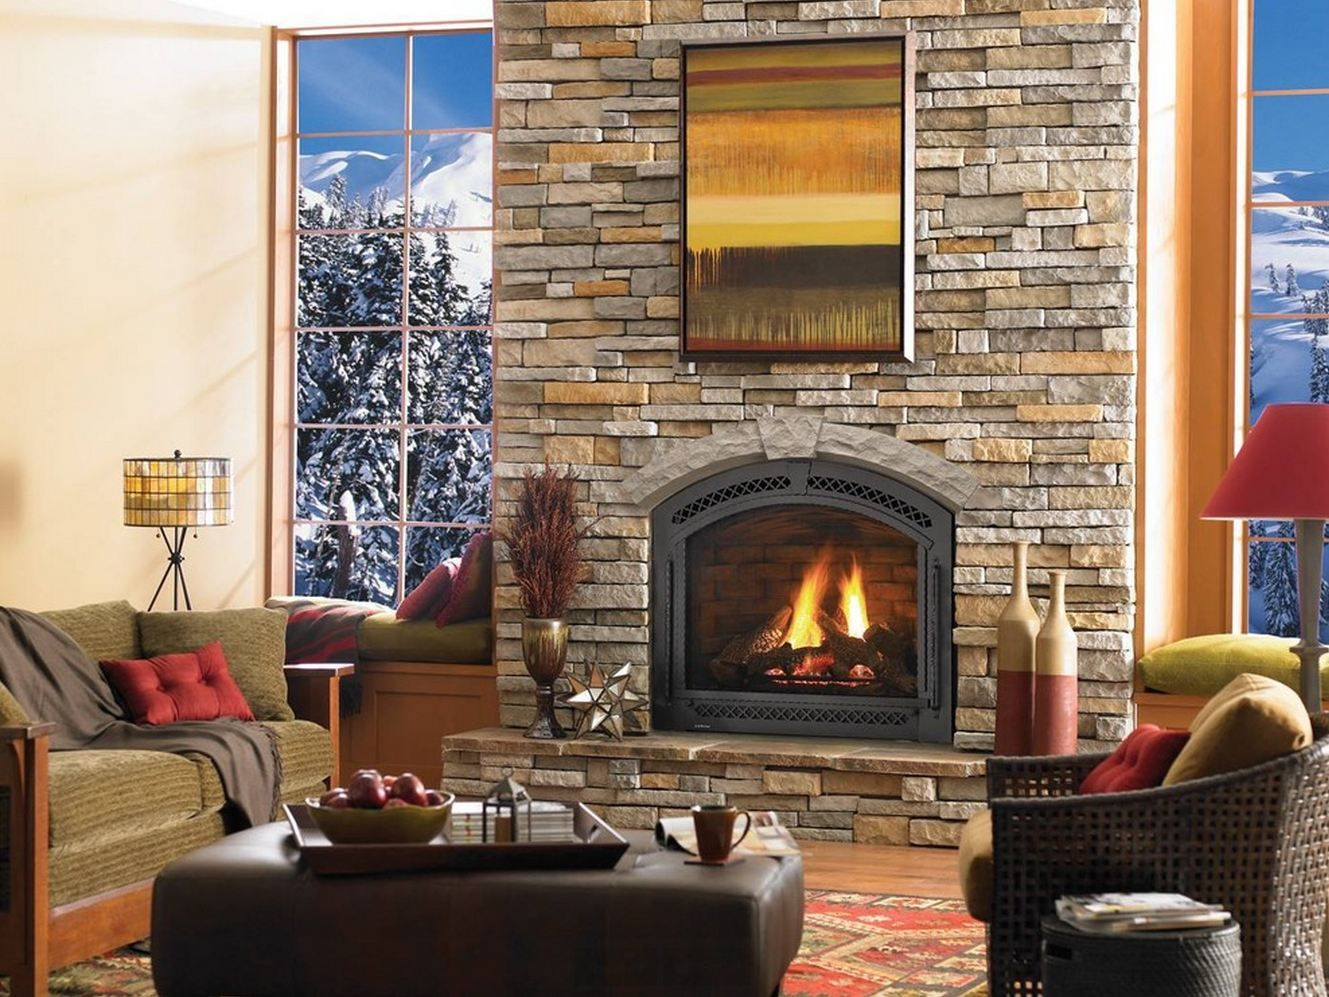 Interior Granite Stone Wall Gas Fireplace Repair Under Wall Mirror